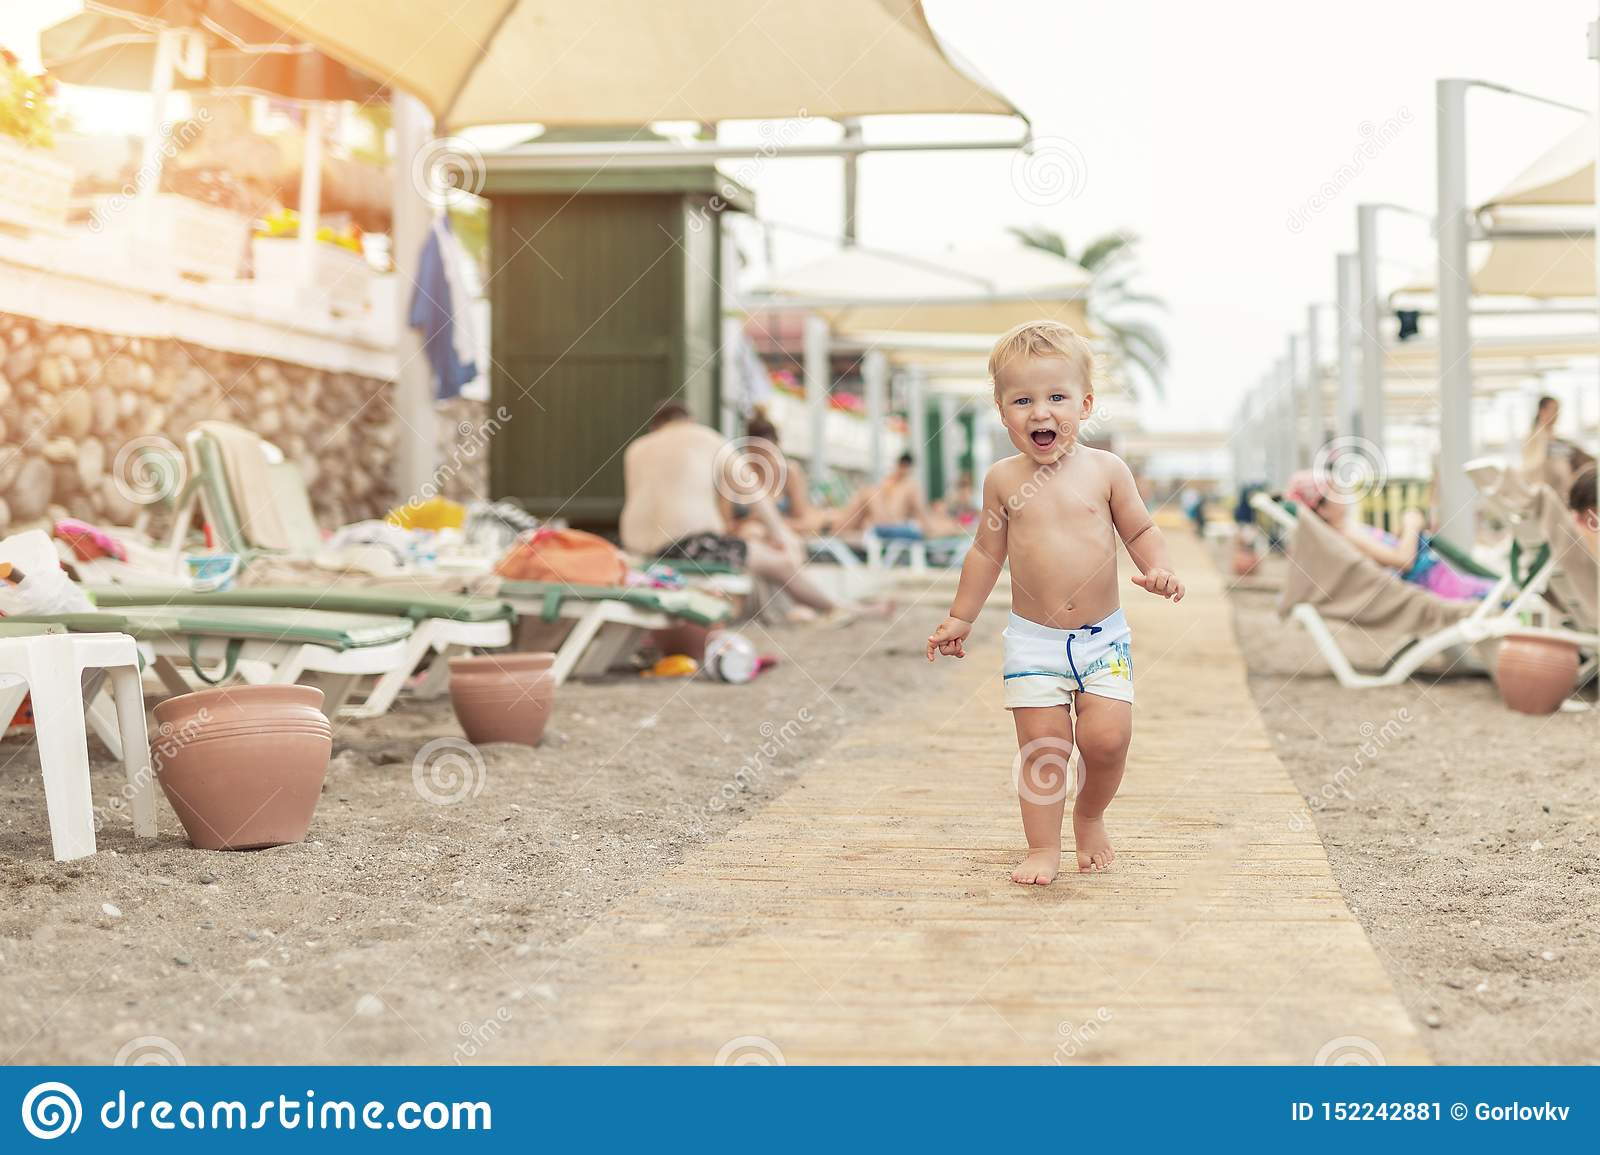 Cute caucasian toodler boy walking alone on sandy beach between chaise-lounge. Adorable happy child having fun playing at seaside